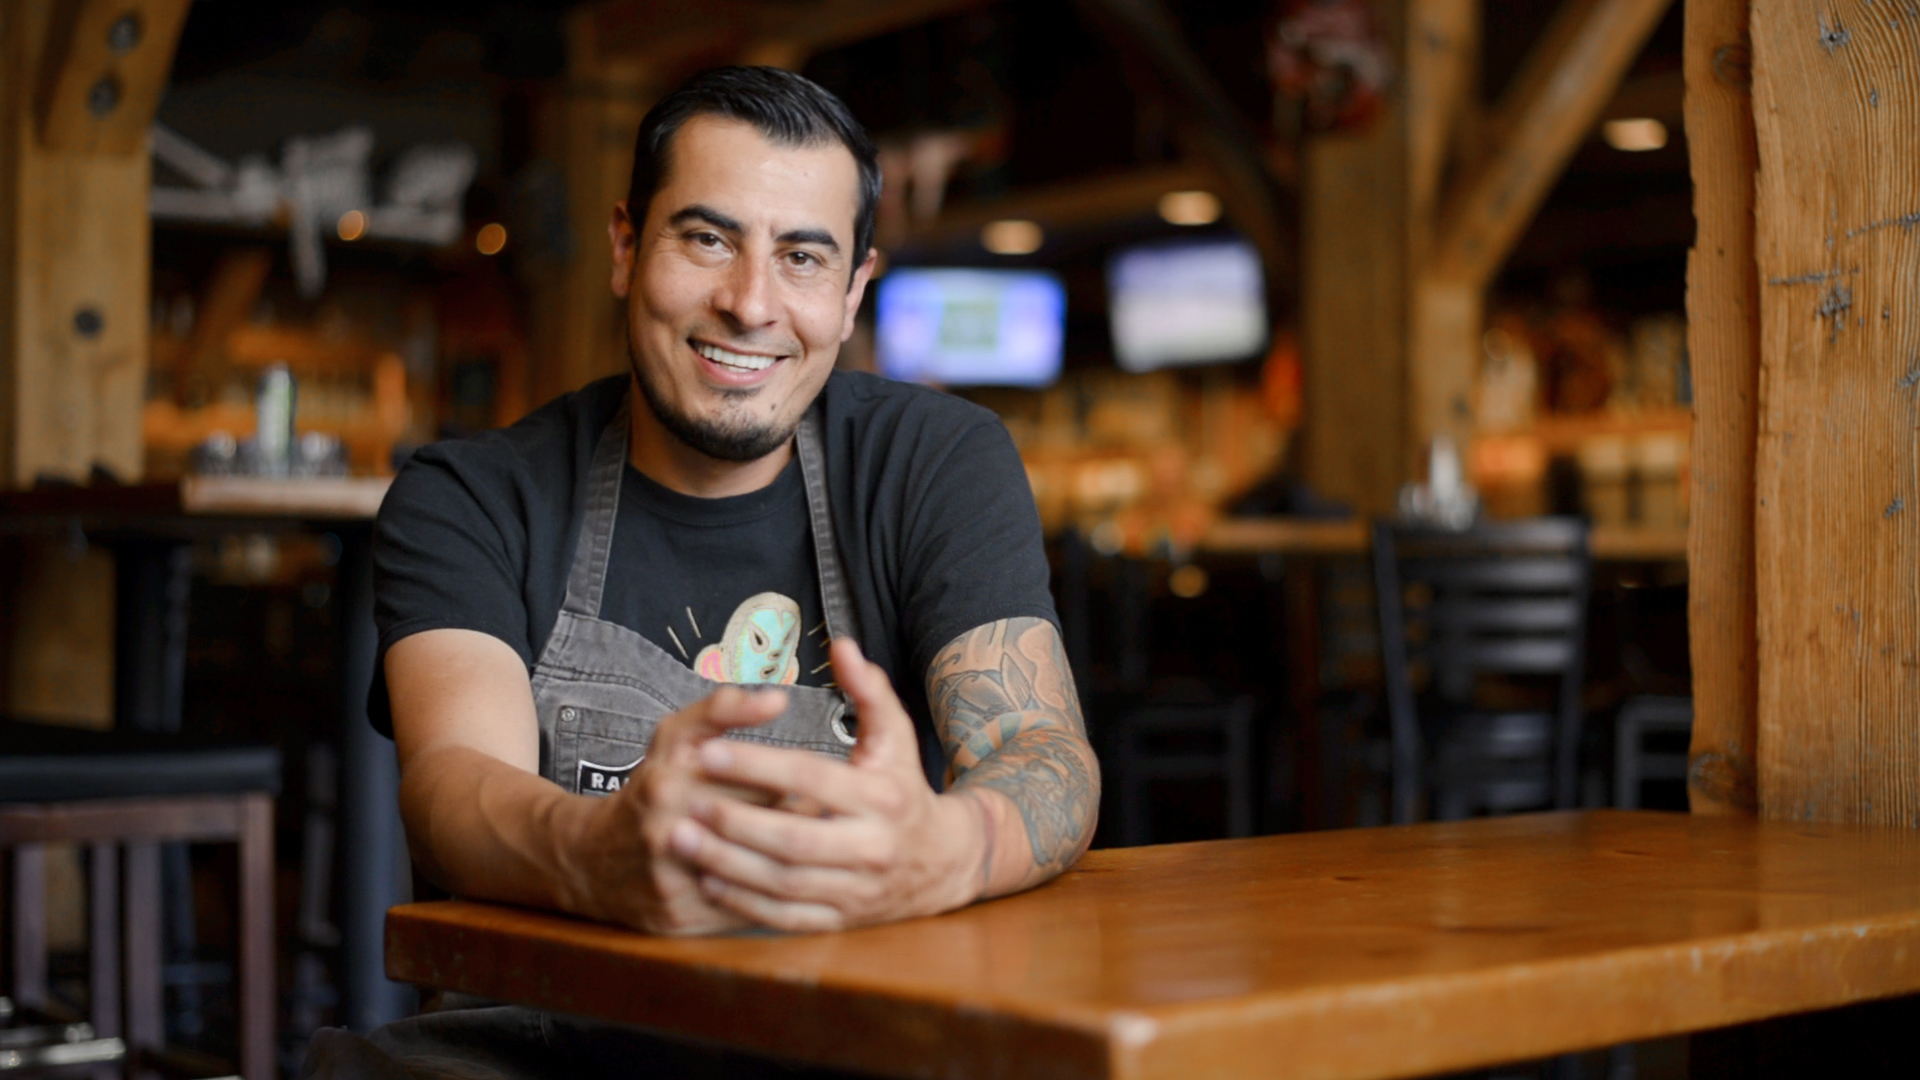 Cocinero Mexicano & Co-Owner of Machete Restaurants